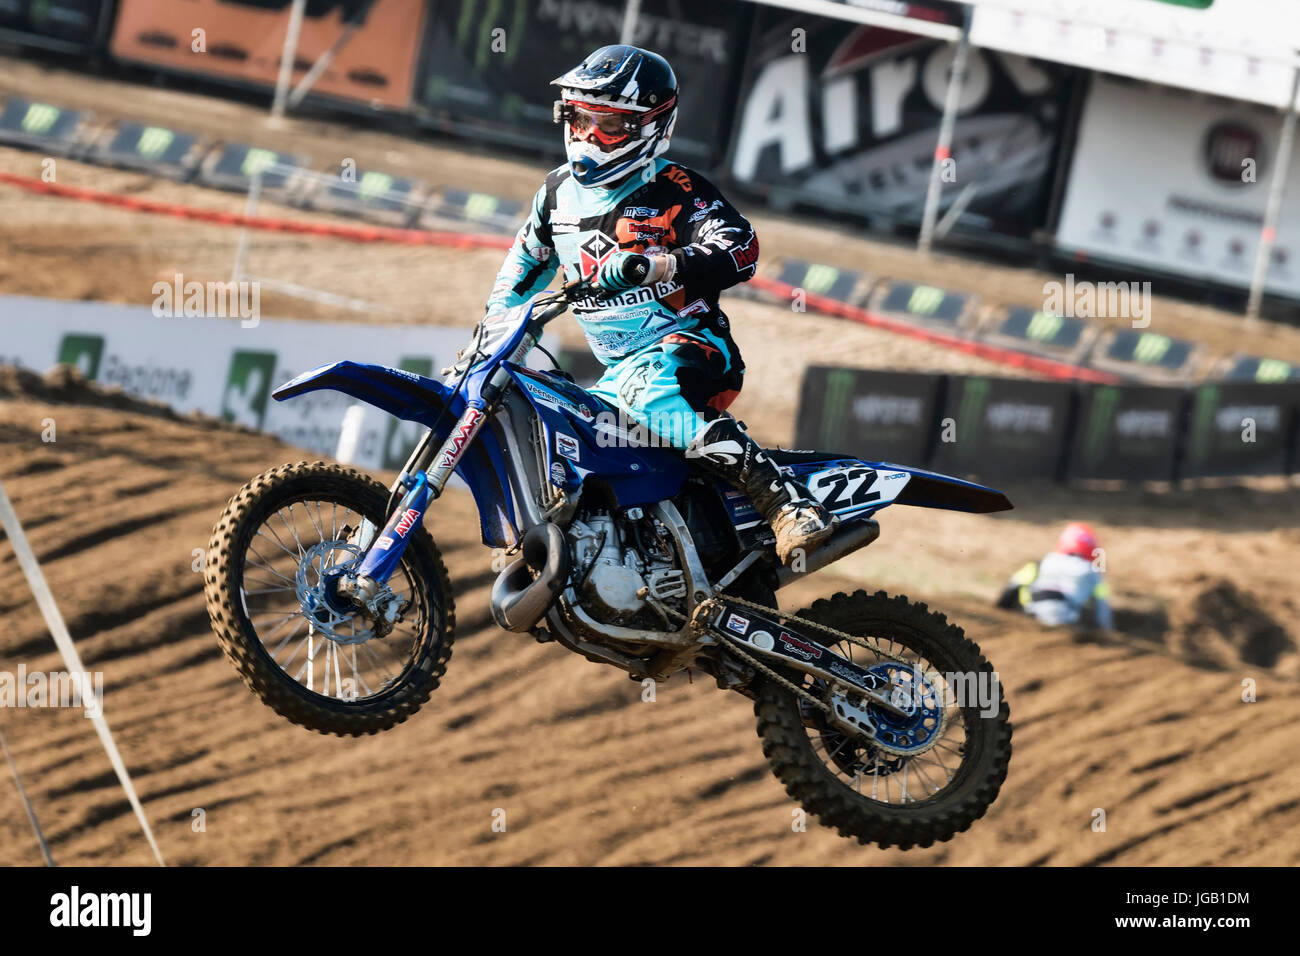 Motocross Stock Photos Motocross Stock Images Alamy